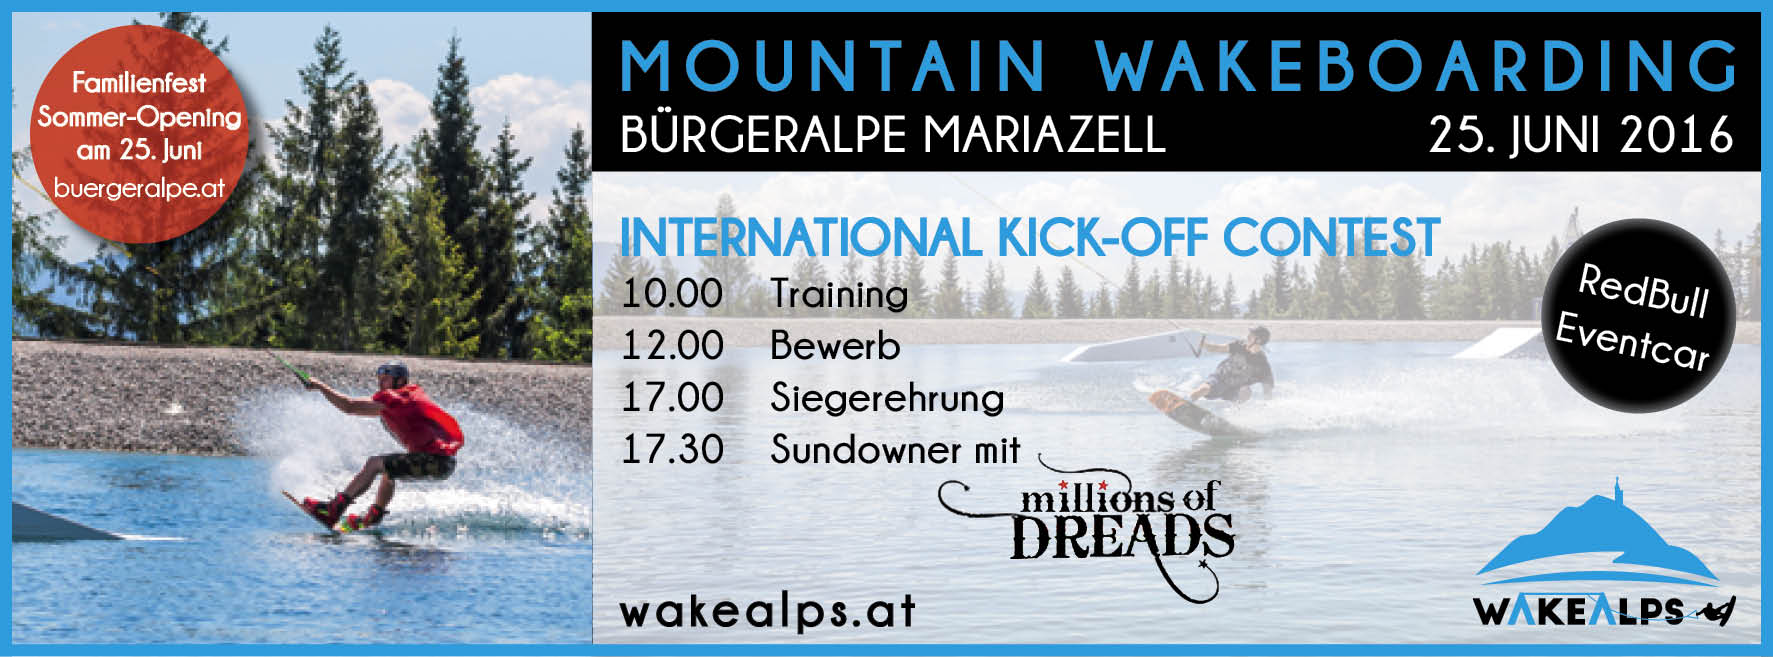 Inserat_WakeAlps_2016_Facebook